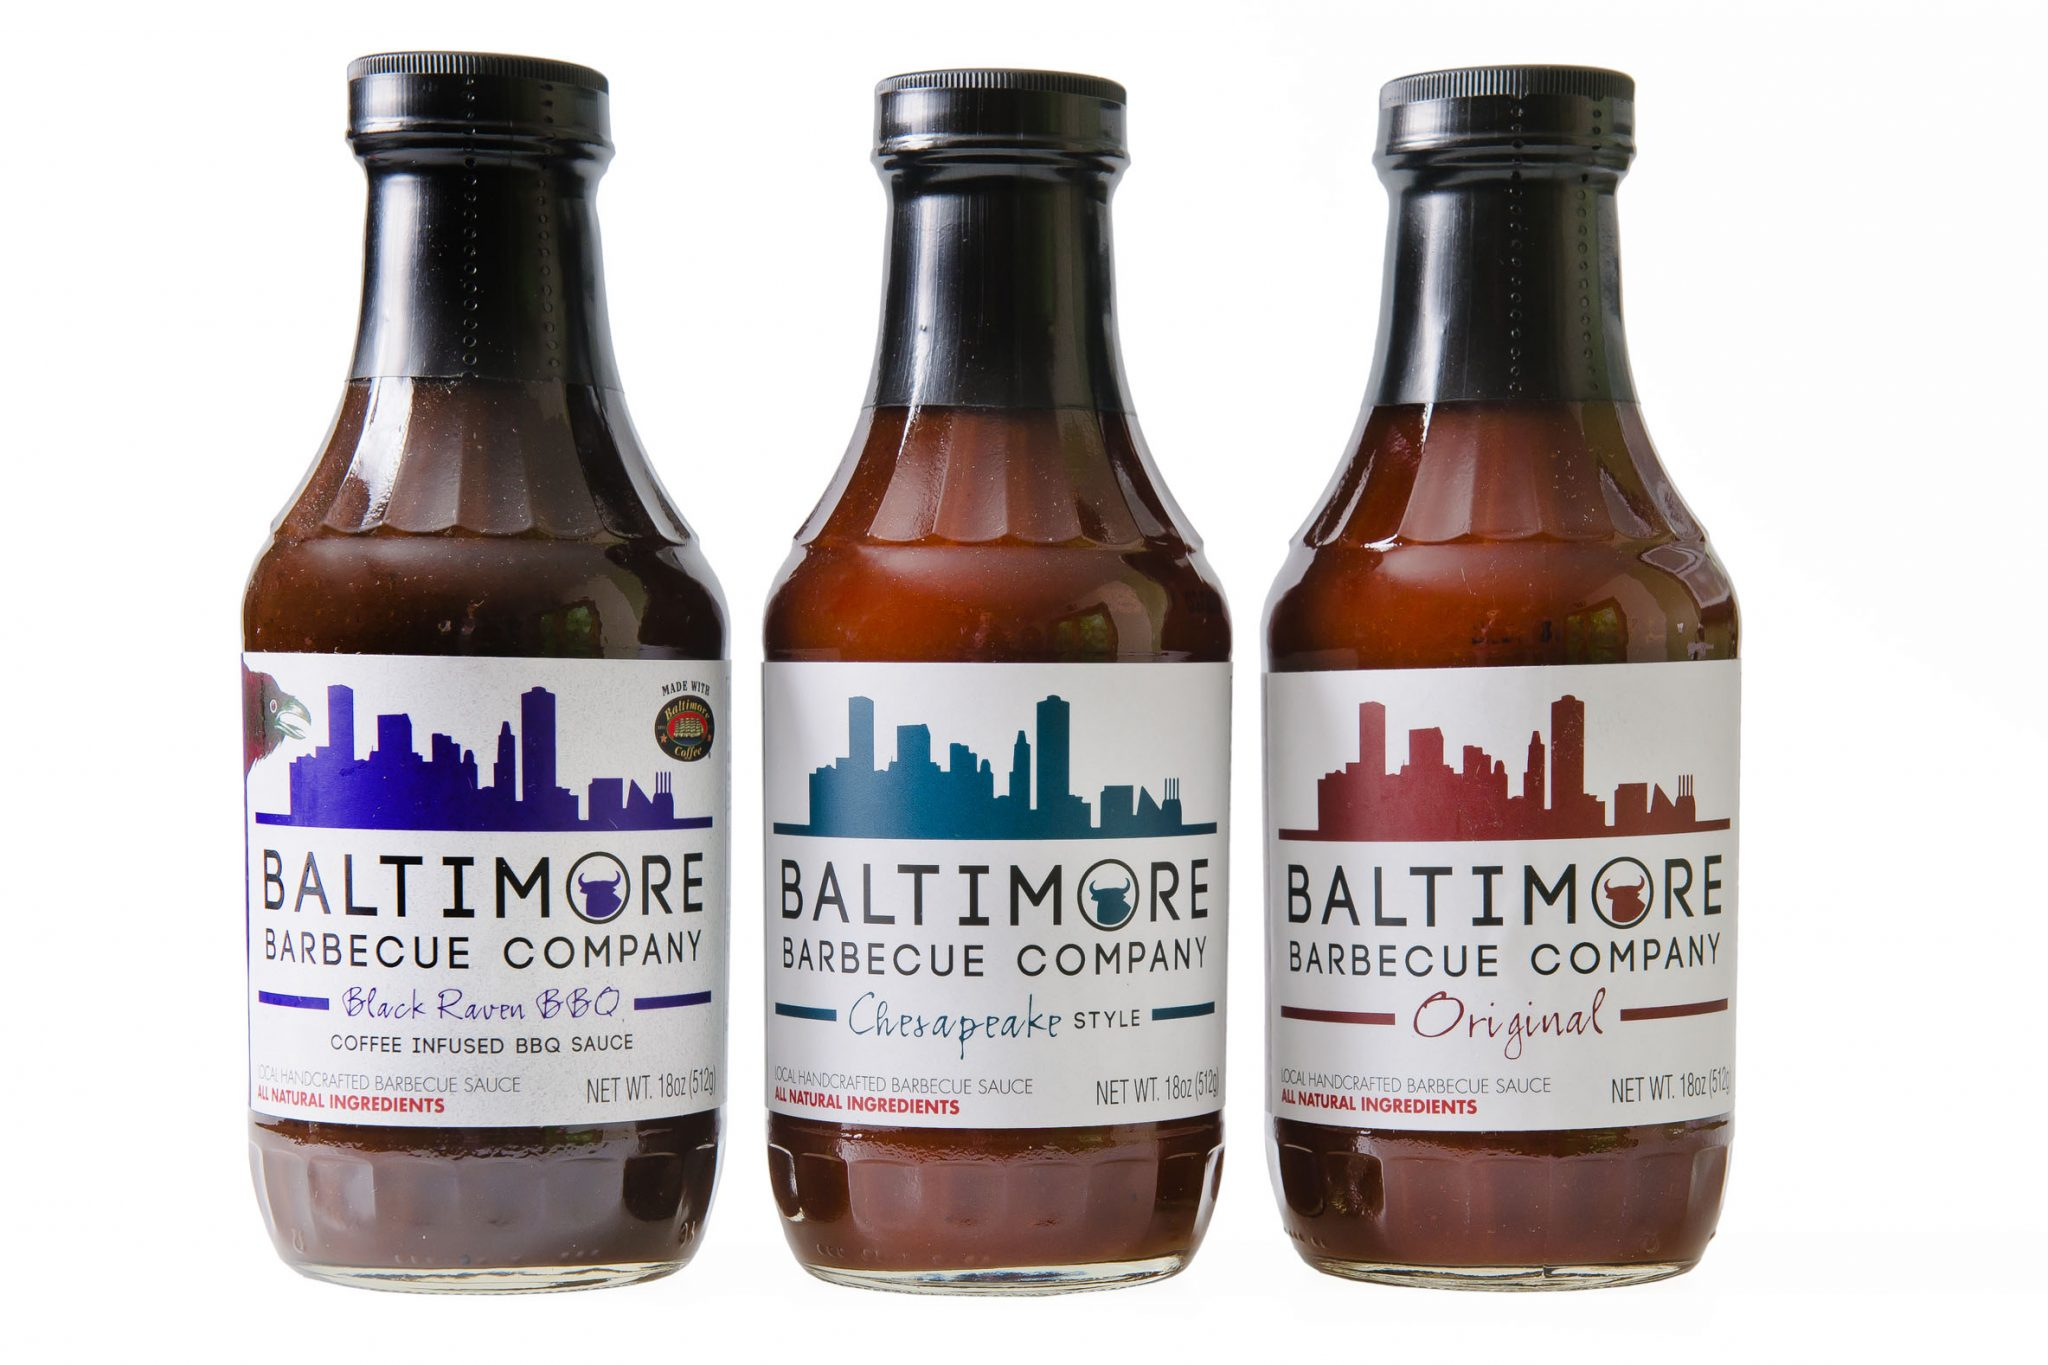 Baltimore Barbecue Company